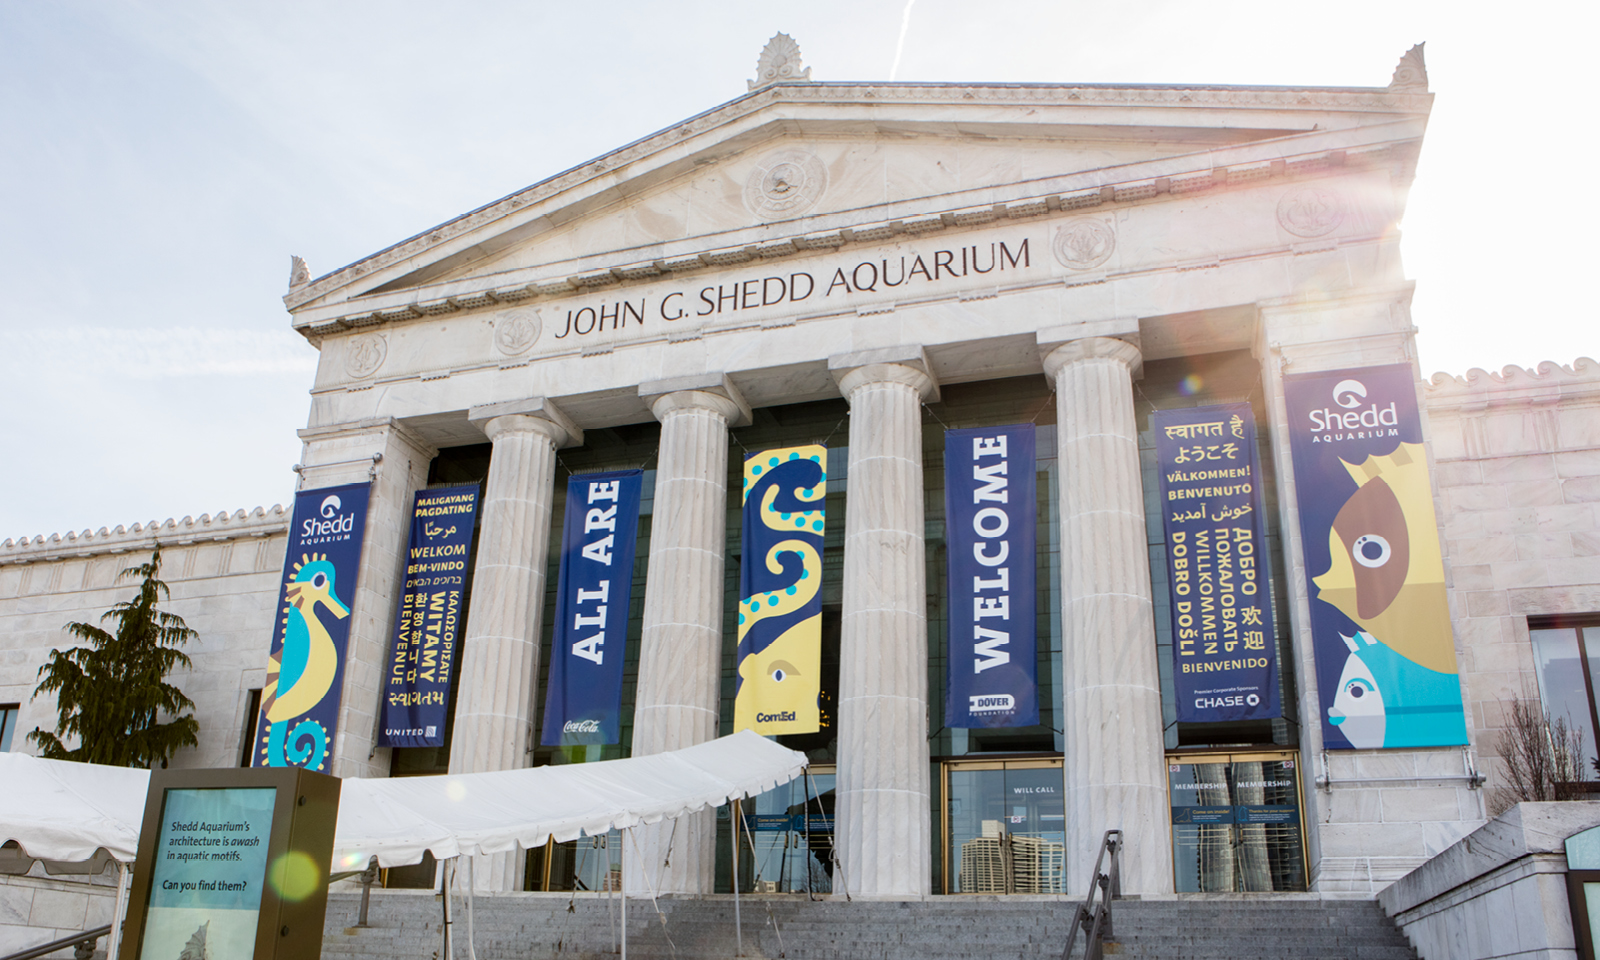 A photo of Shedd Aquarium's historic grecian style facade with banners hanging in between its columns reading 'All Are Welcome'. Stylized geometric illustrations of an octopus, a seahorse, and two fish frame the message.